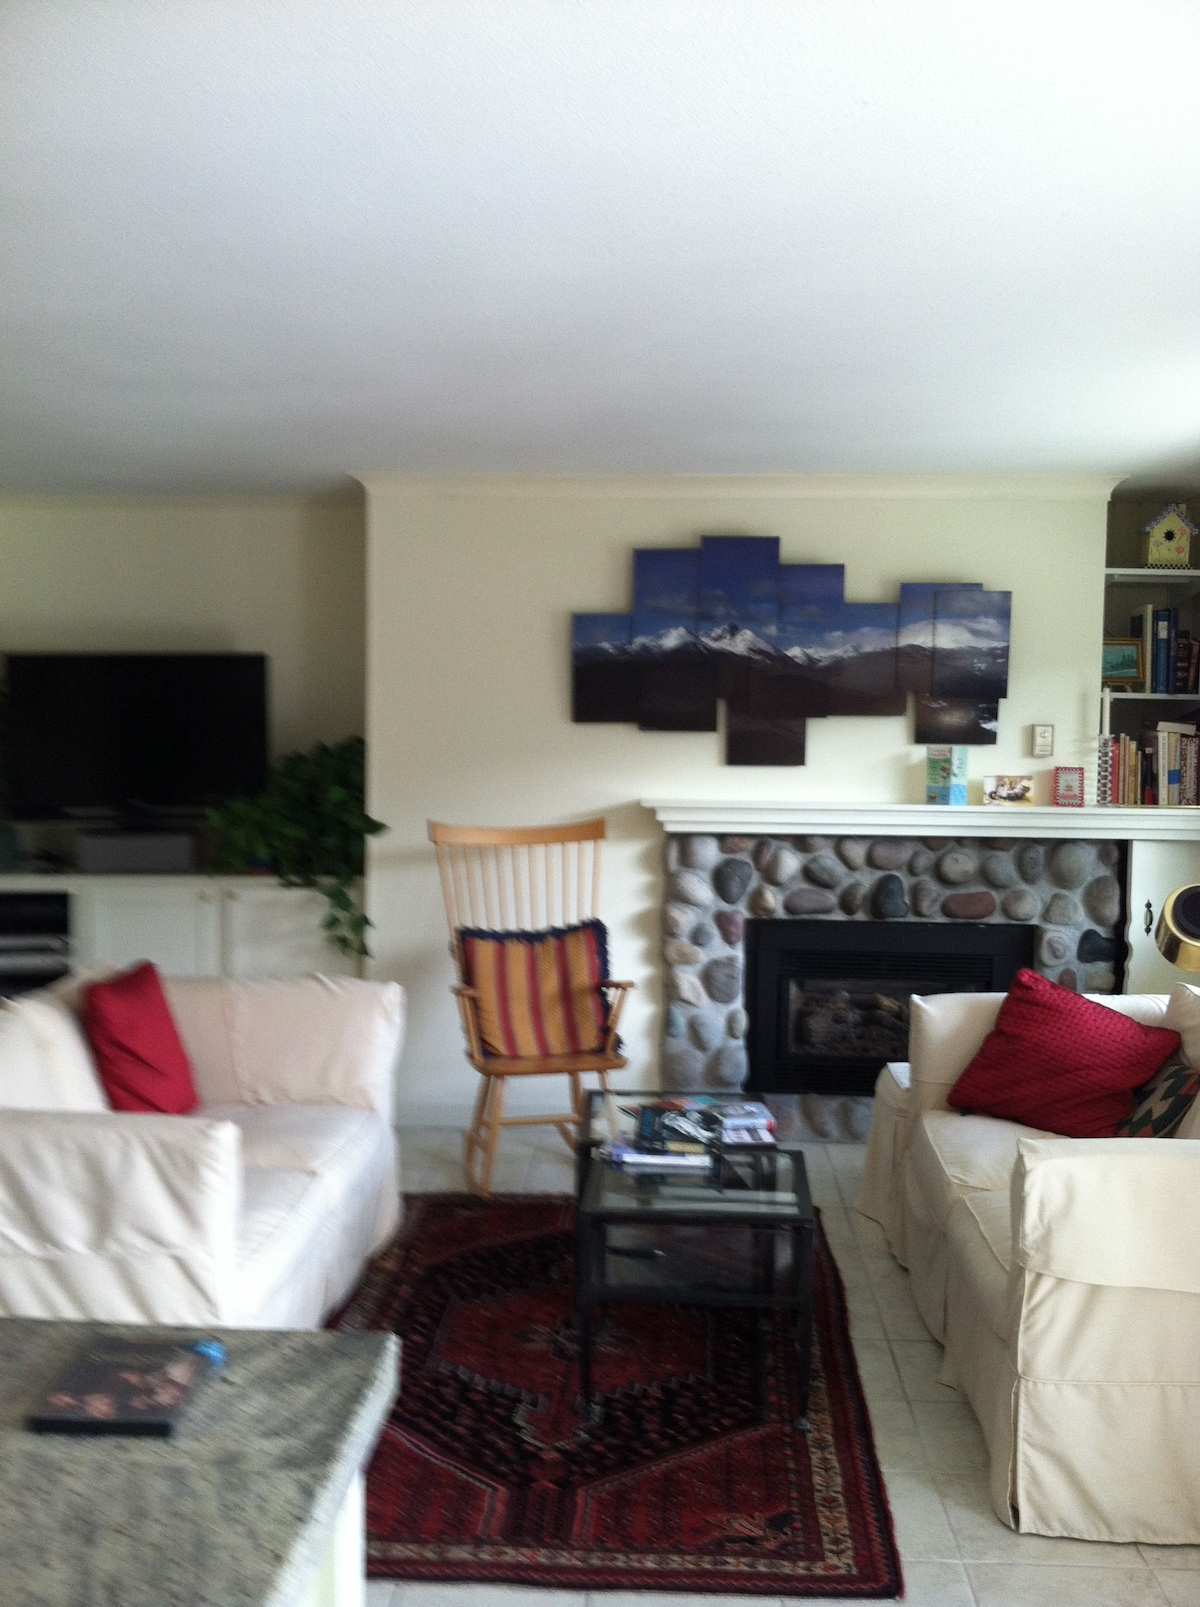 Lionshead lovely 1 bdr condo